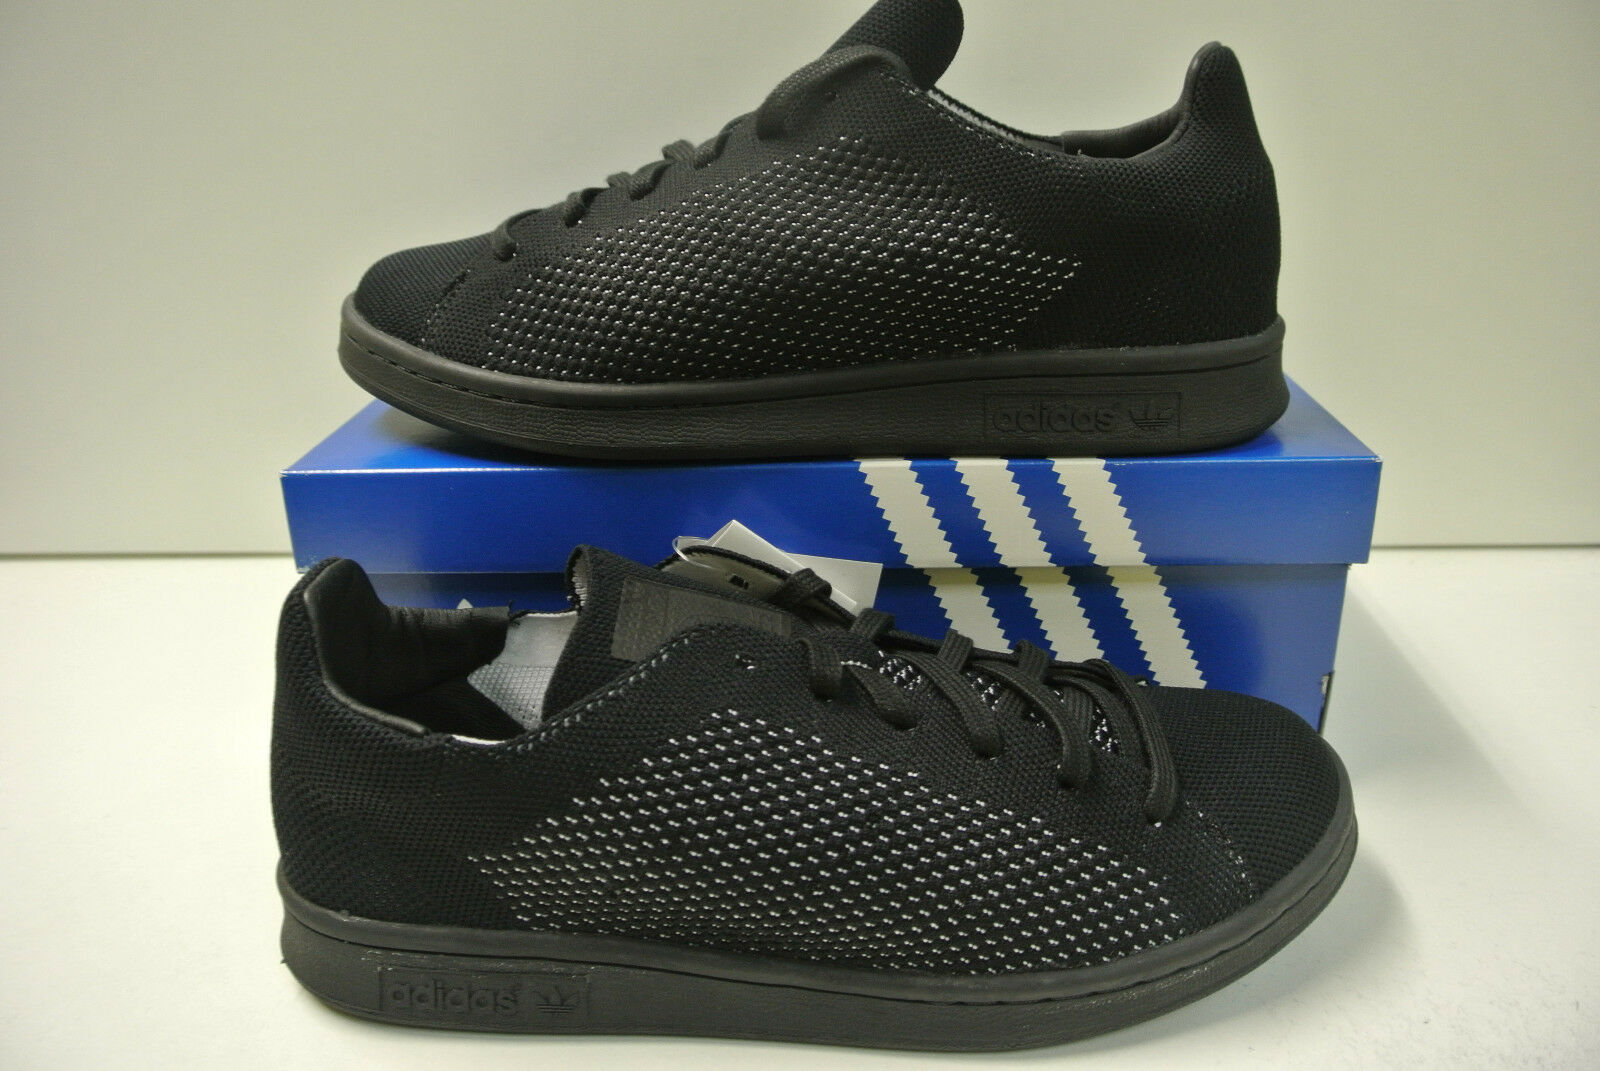 Adidas Stan Smith PK Size Selectable New & Orig Pack s80065